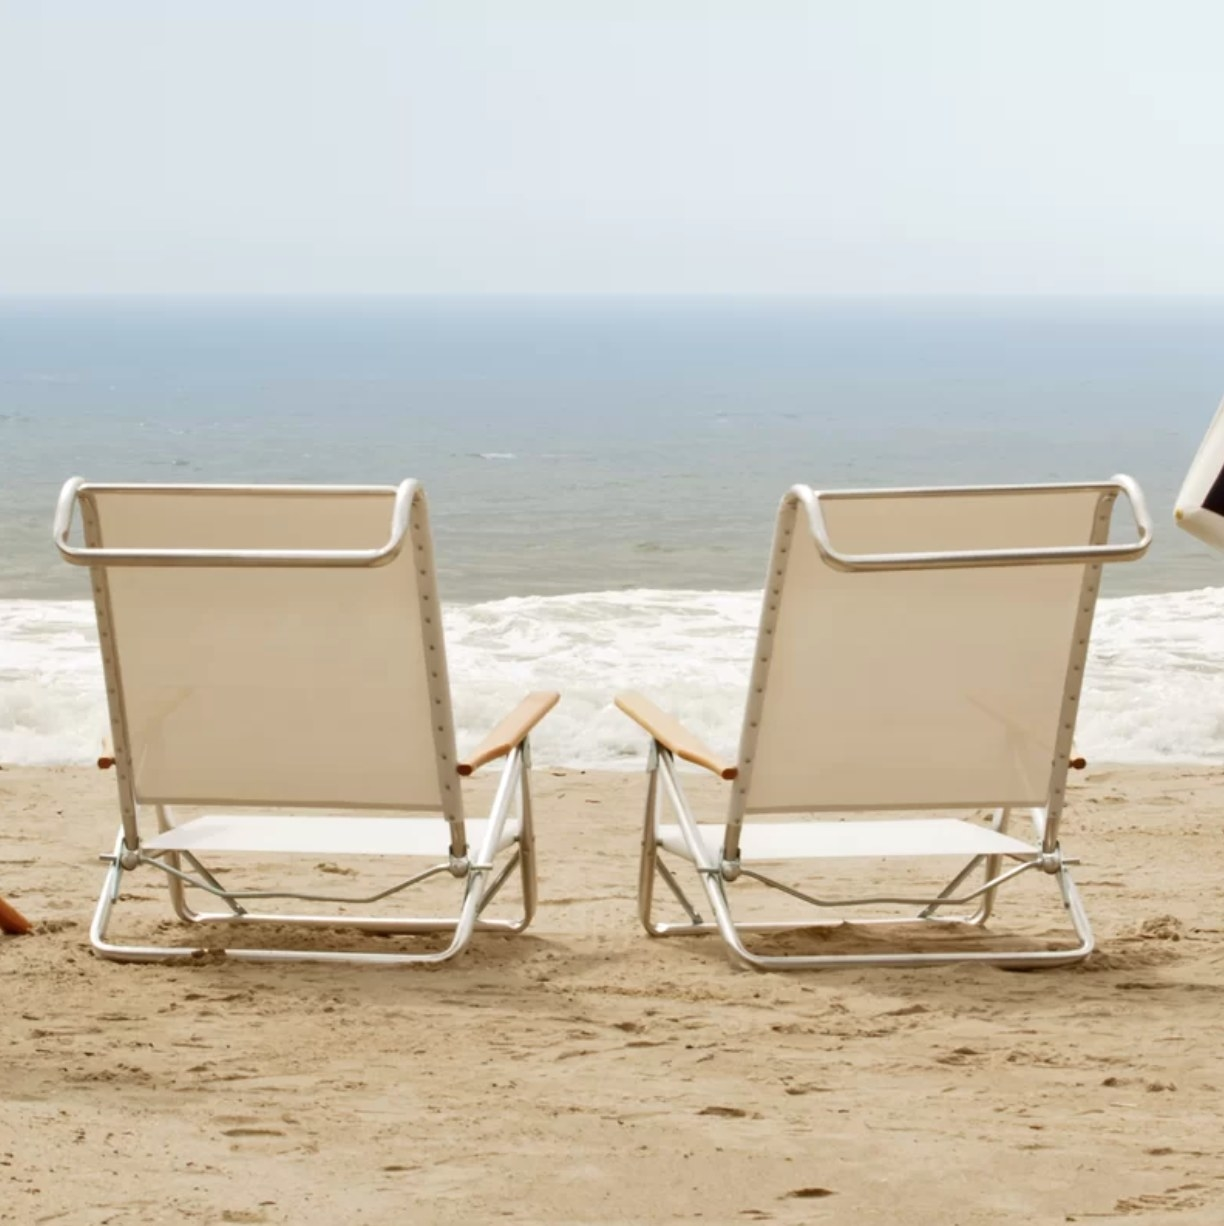 Two cream-colored beach chairs